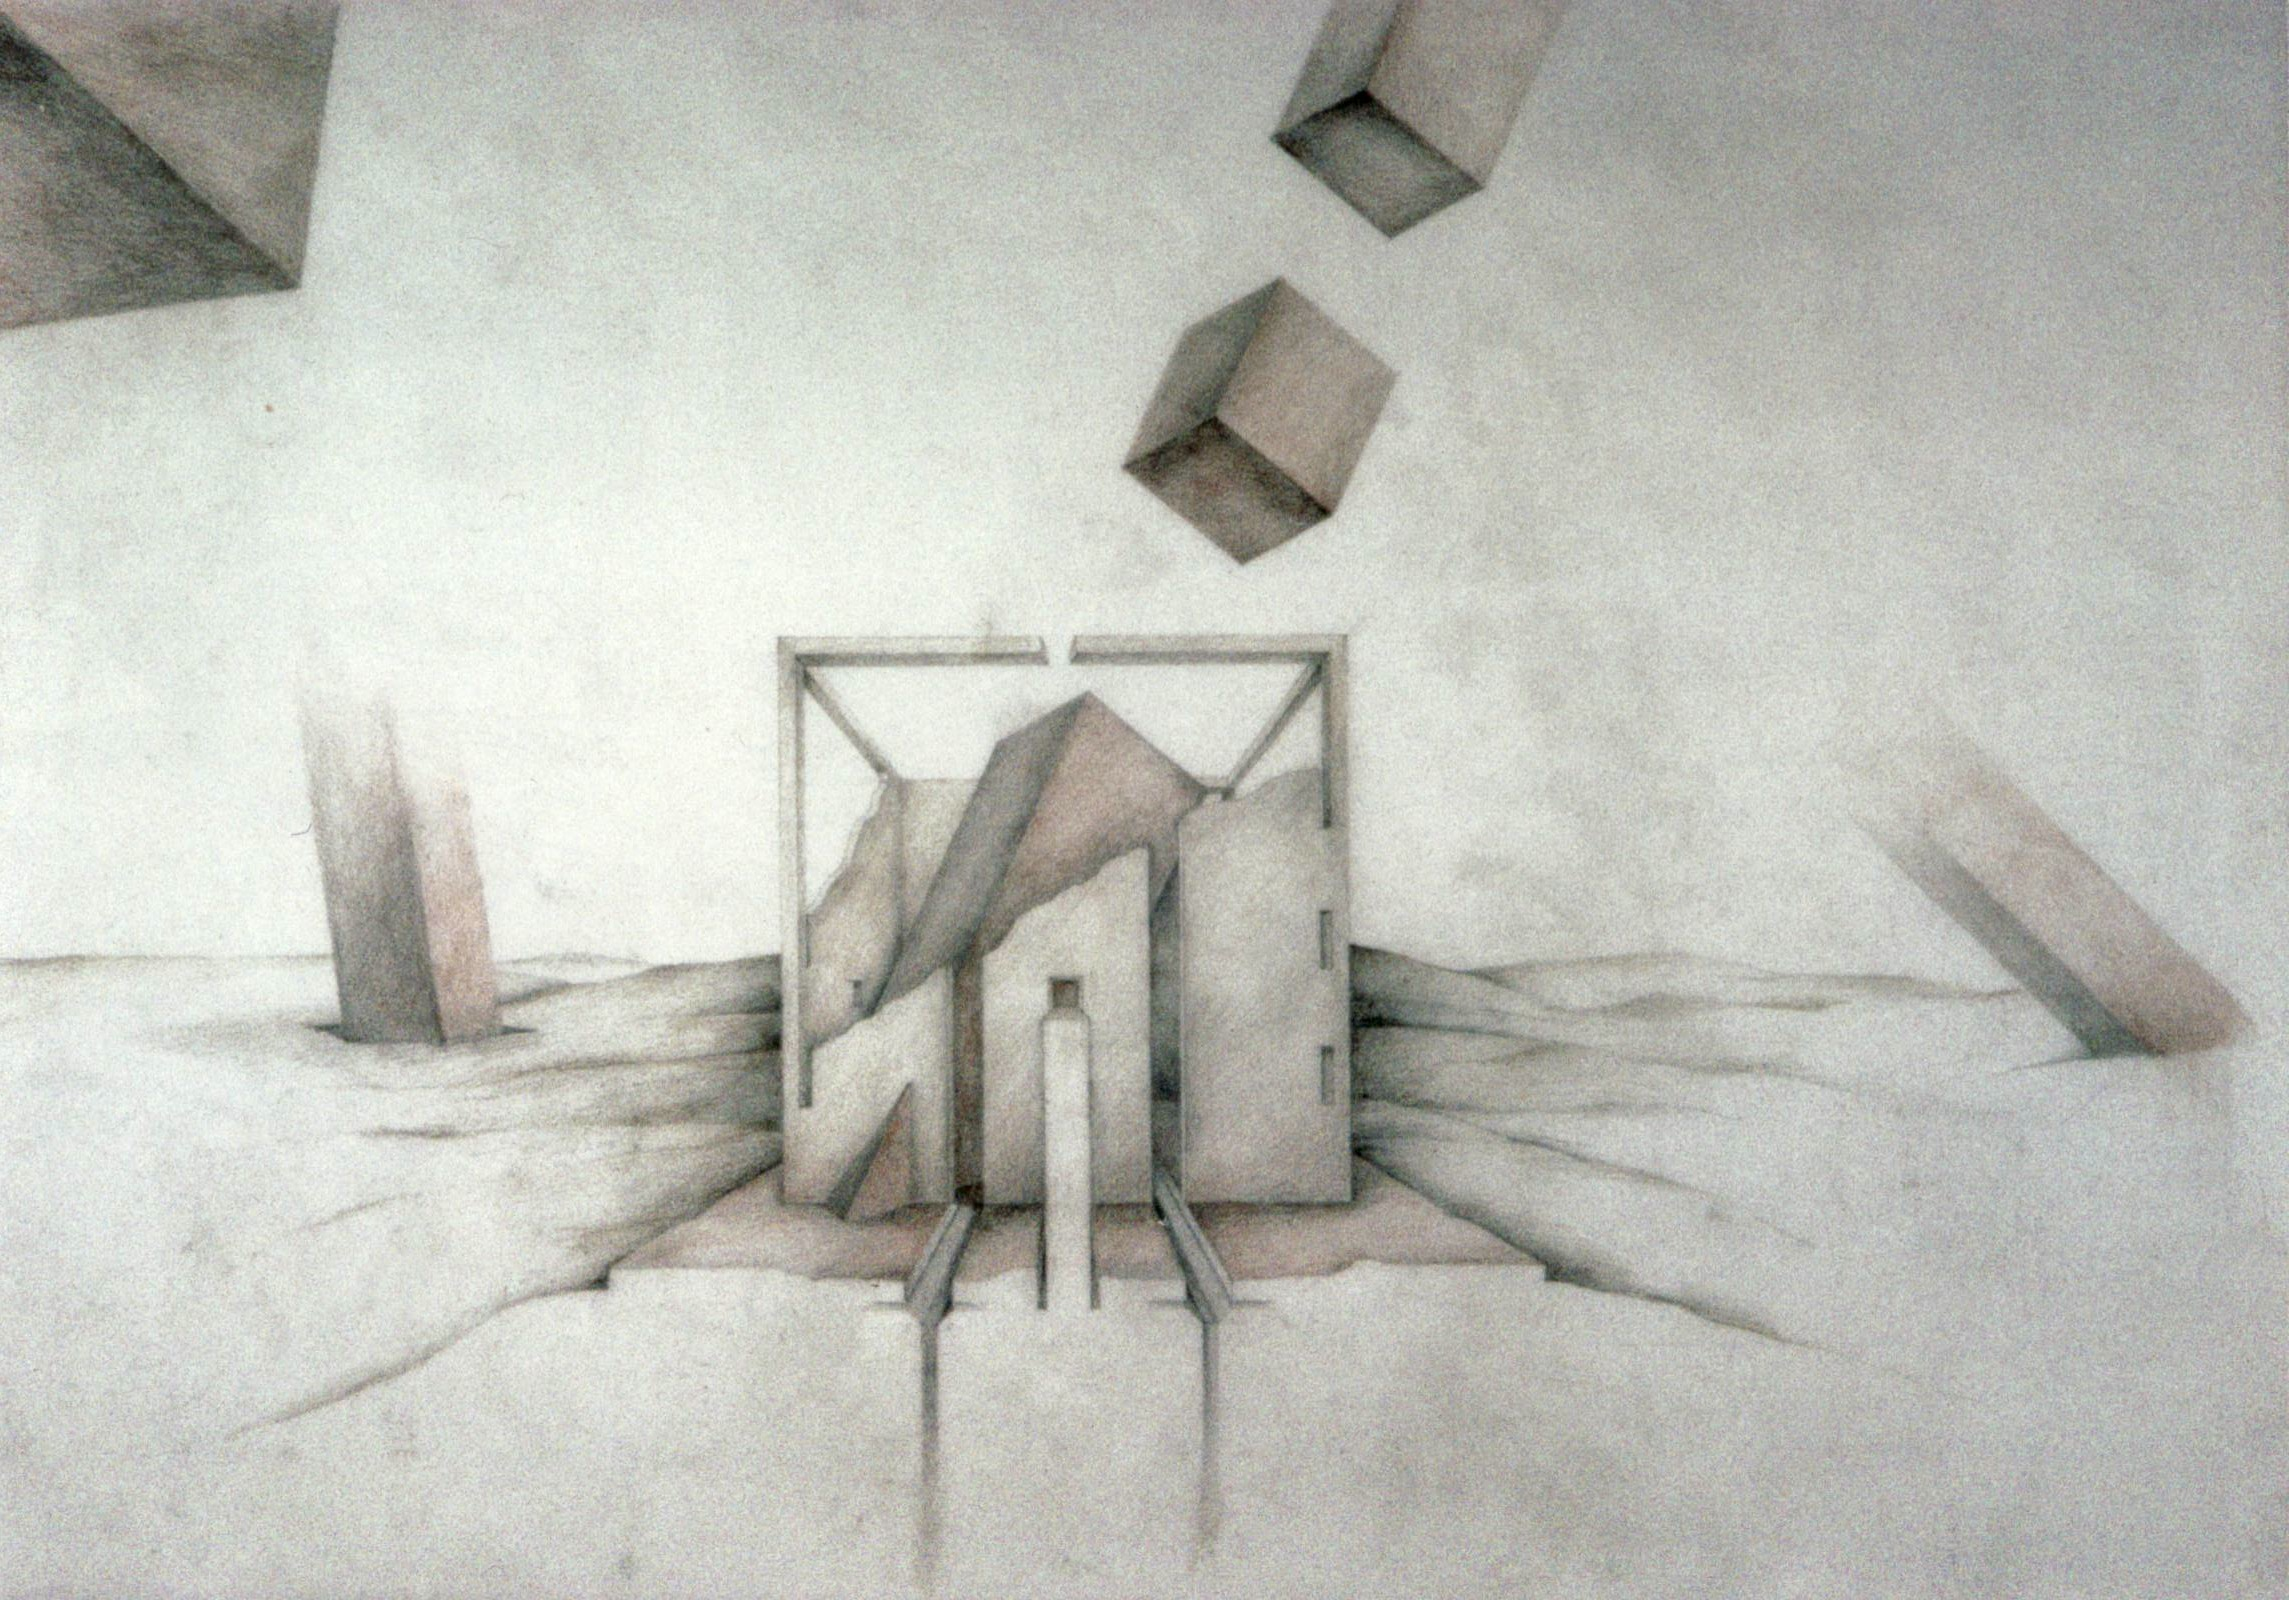 Raimund Abraham, The Last House (1983)